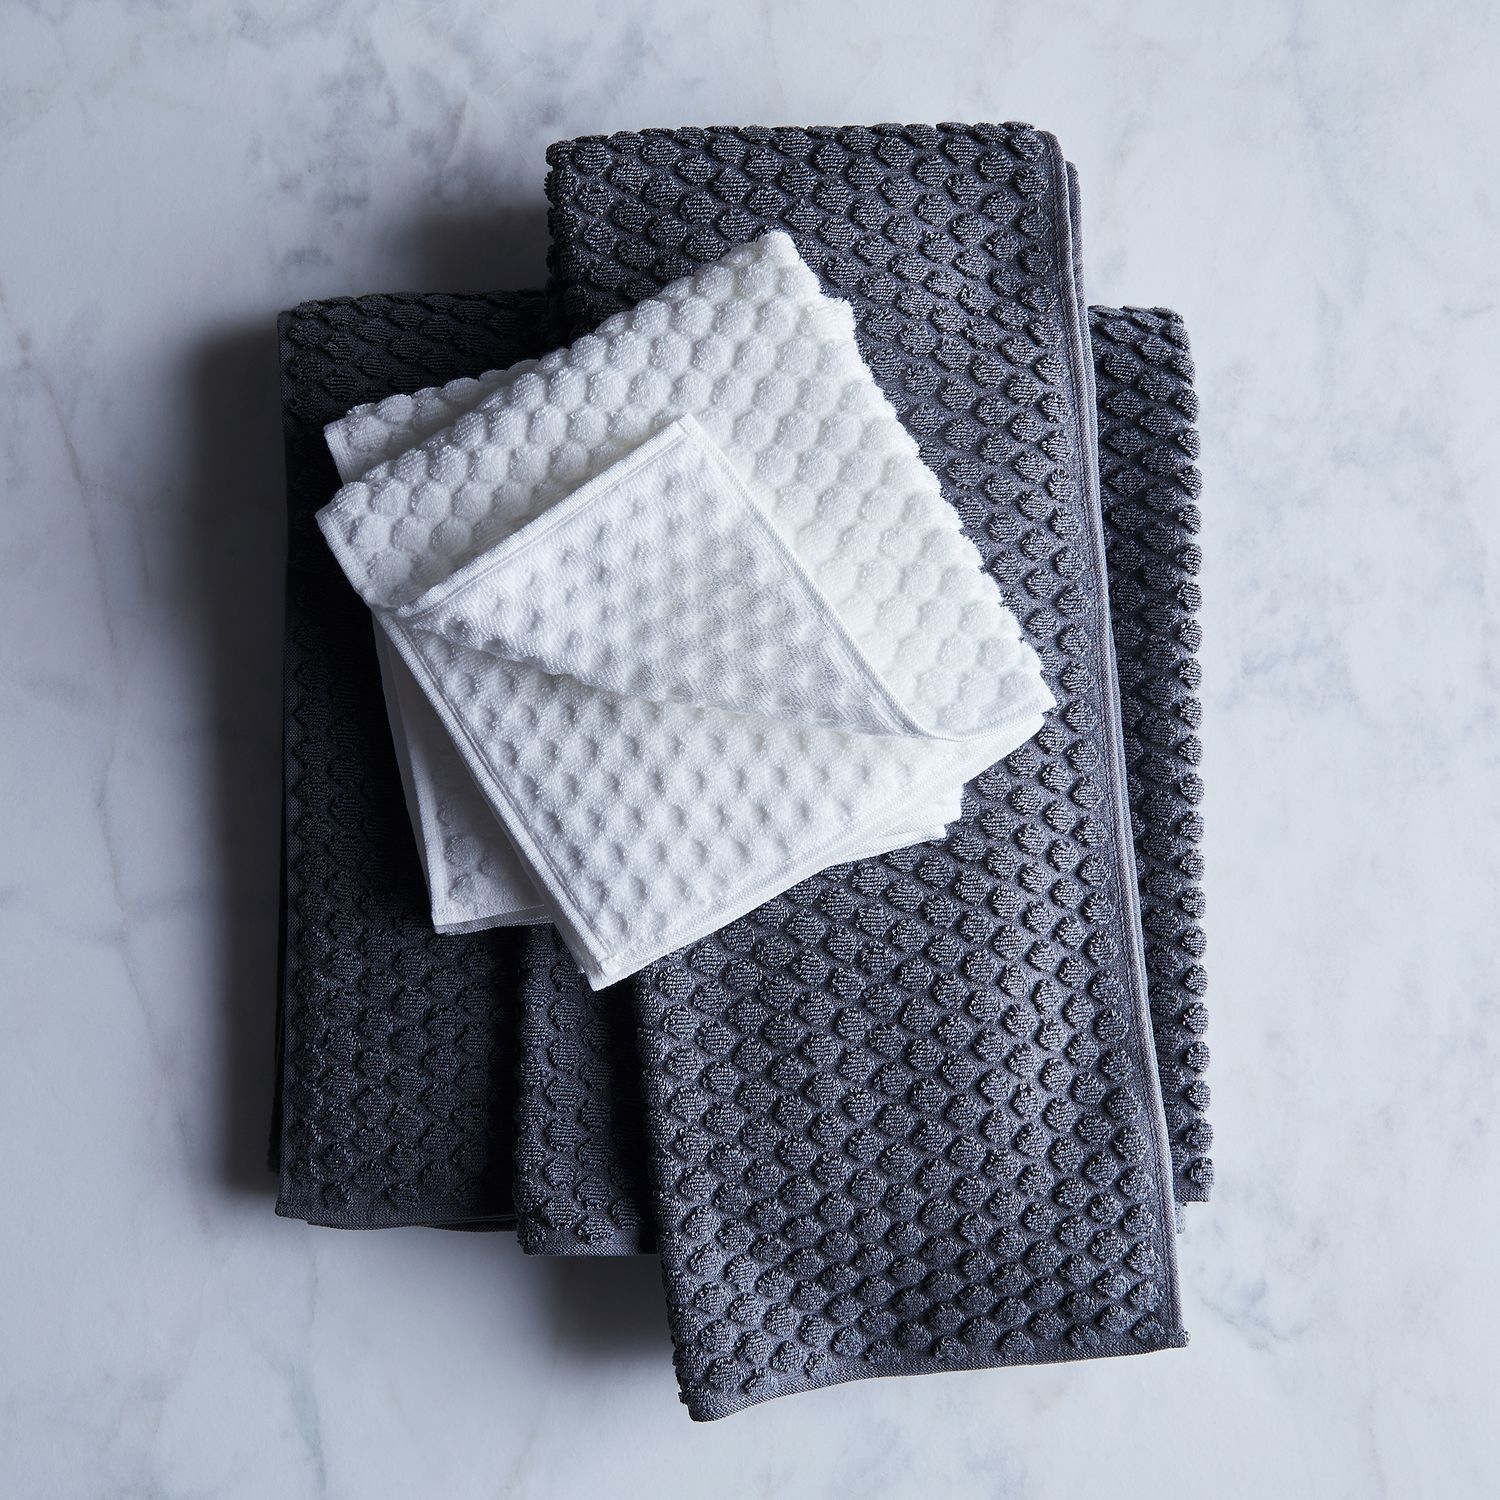 Puchi Puchi Japanese Textured Bath Towels On Food52